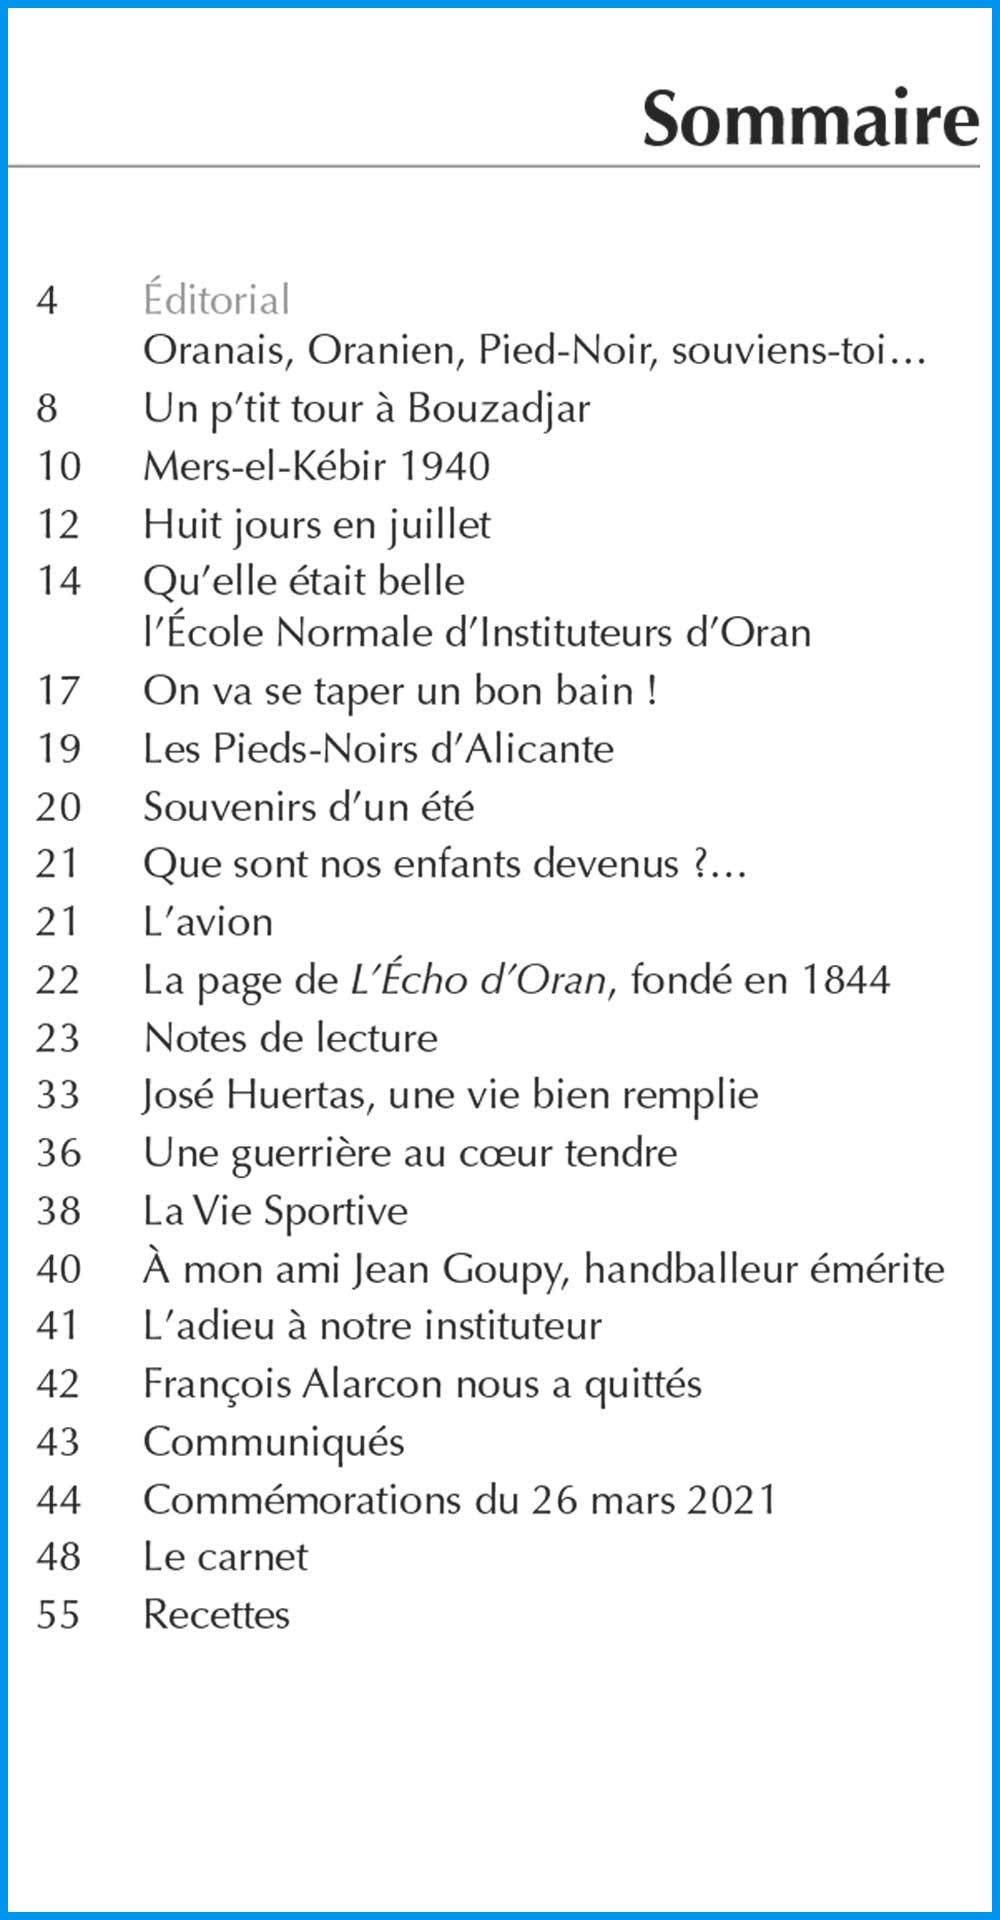 sommaire 395